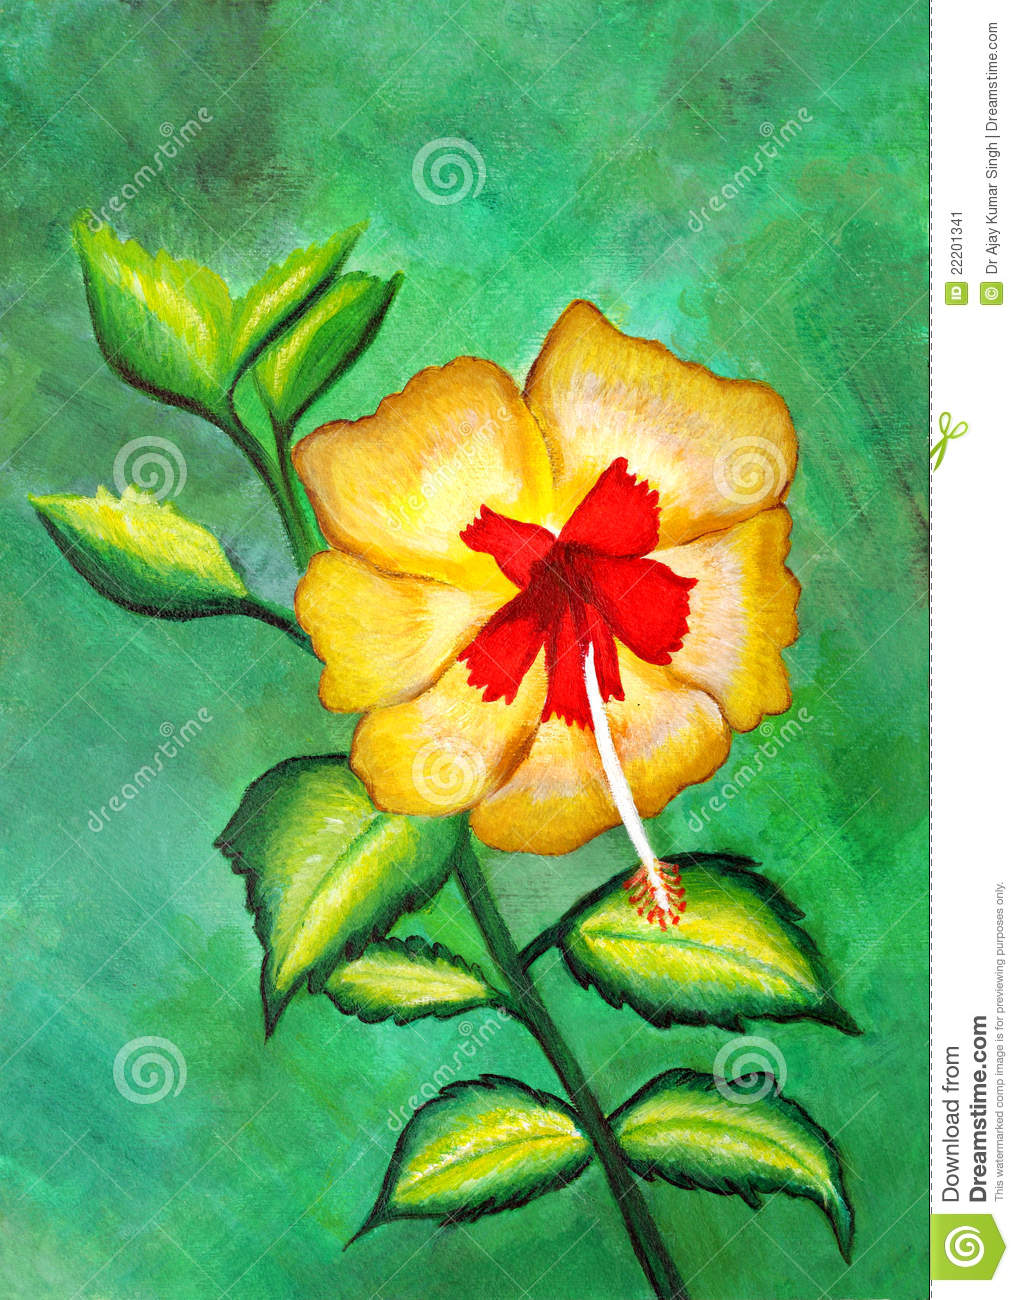 Hibiscus Are Very Beautiful With Yellow And Red 9